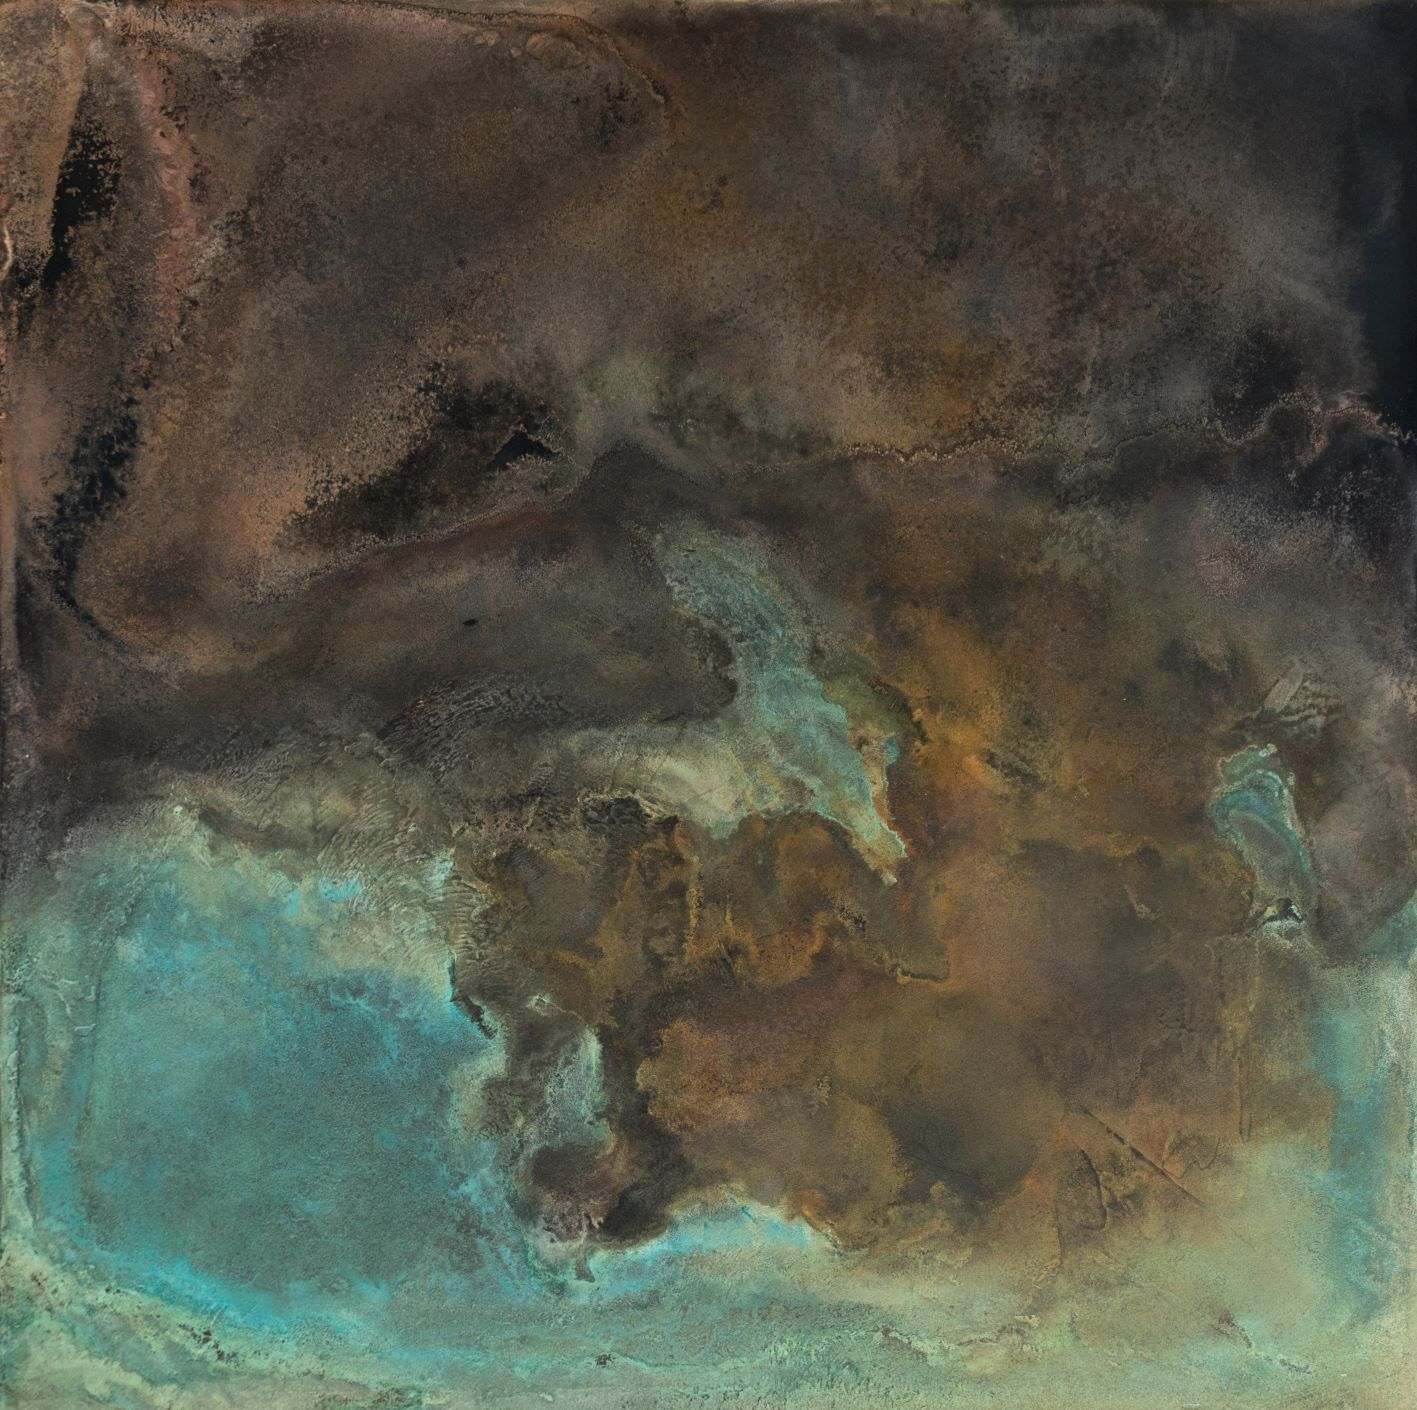 Untitled XIX-XXVI, Small size series,Frédérique Domergue,Contemporary painting